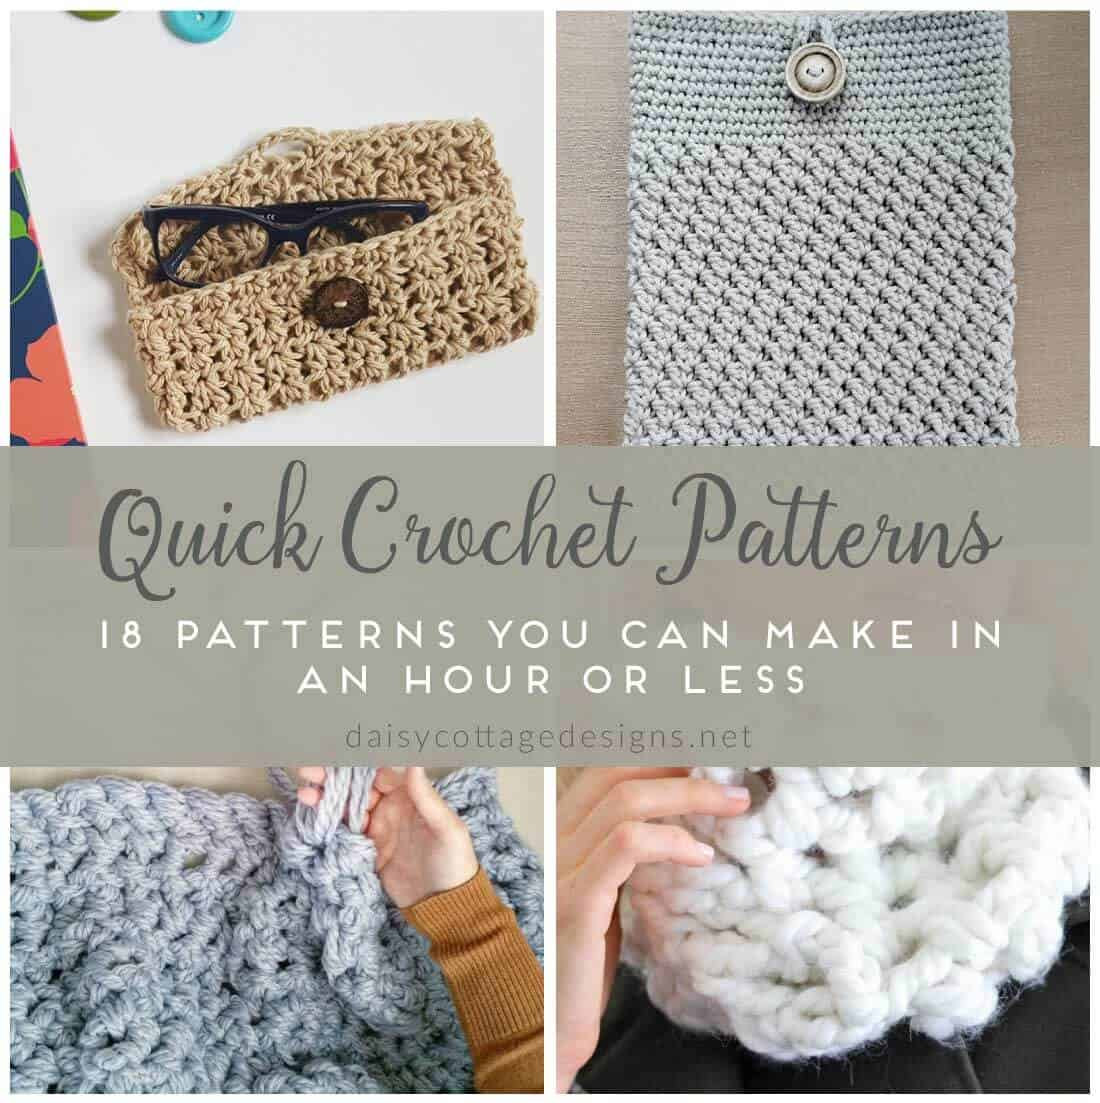 easy crochet patterns quick crochet patterns fast crochet projects ...